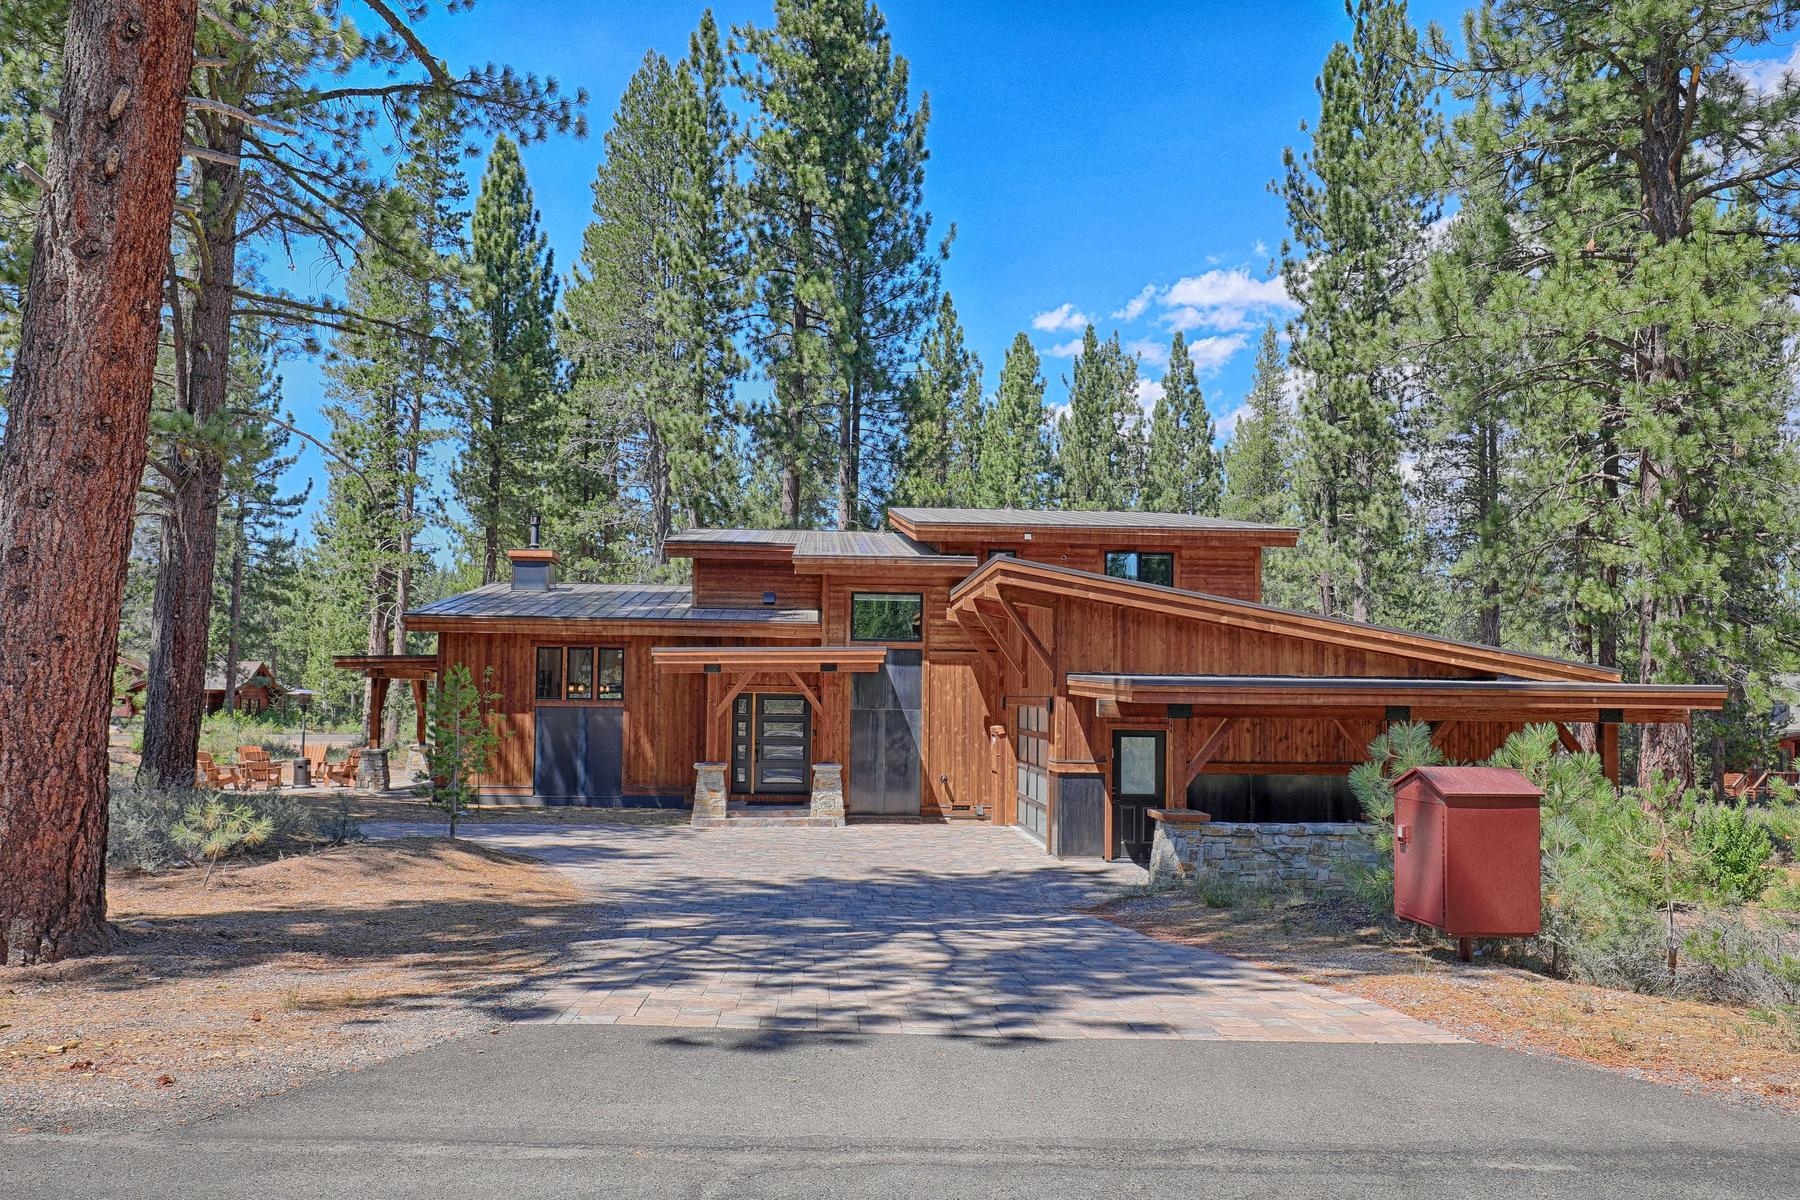 Single Family Homes for Active at Grey's Crossing Modern Craftsman 11090 Henness Road Truckee, California 96161 United States